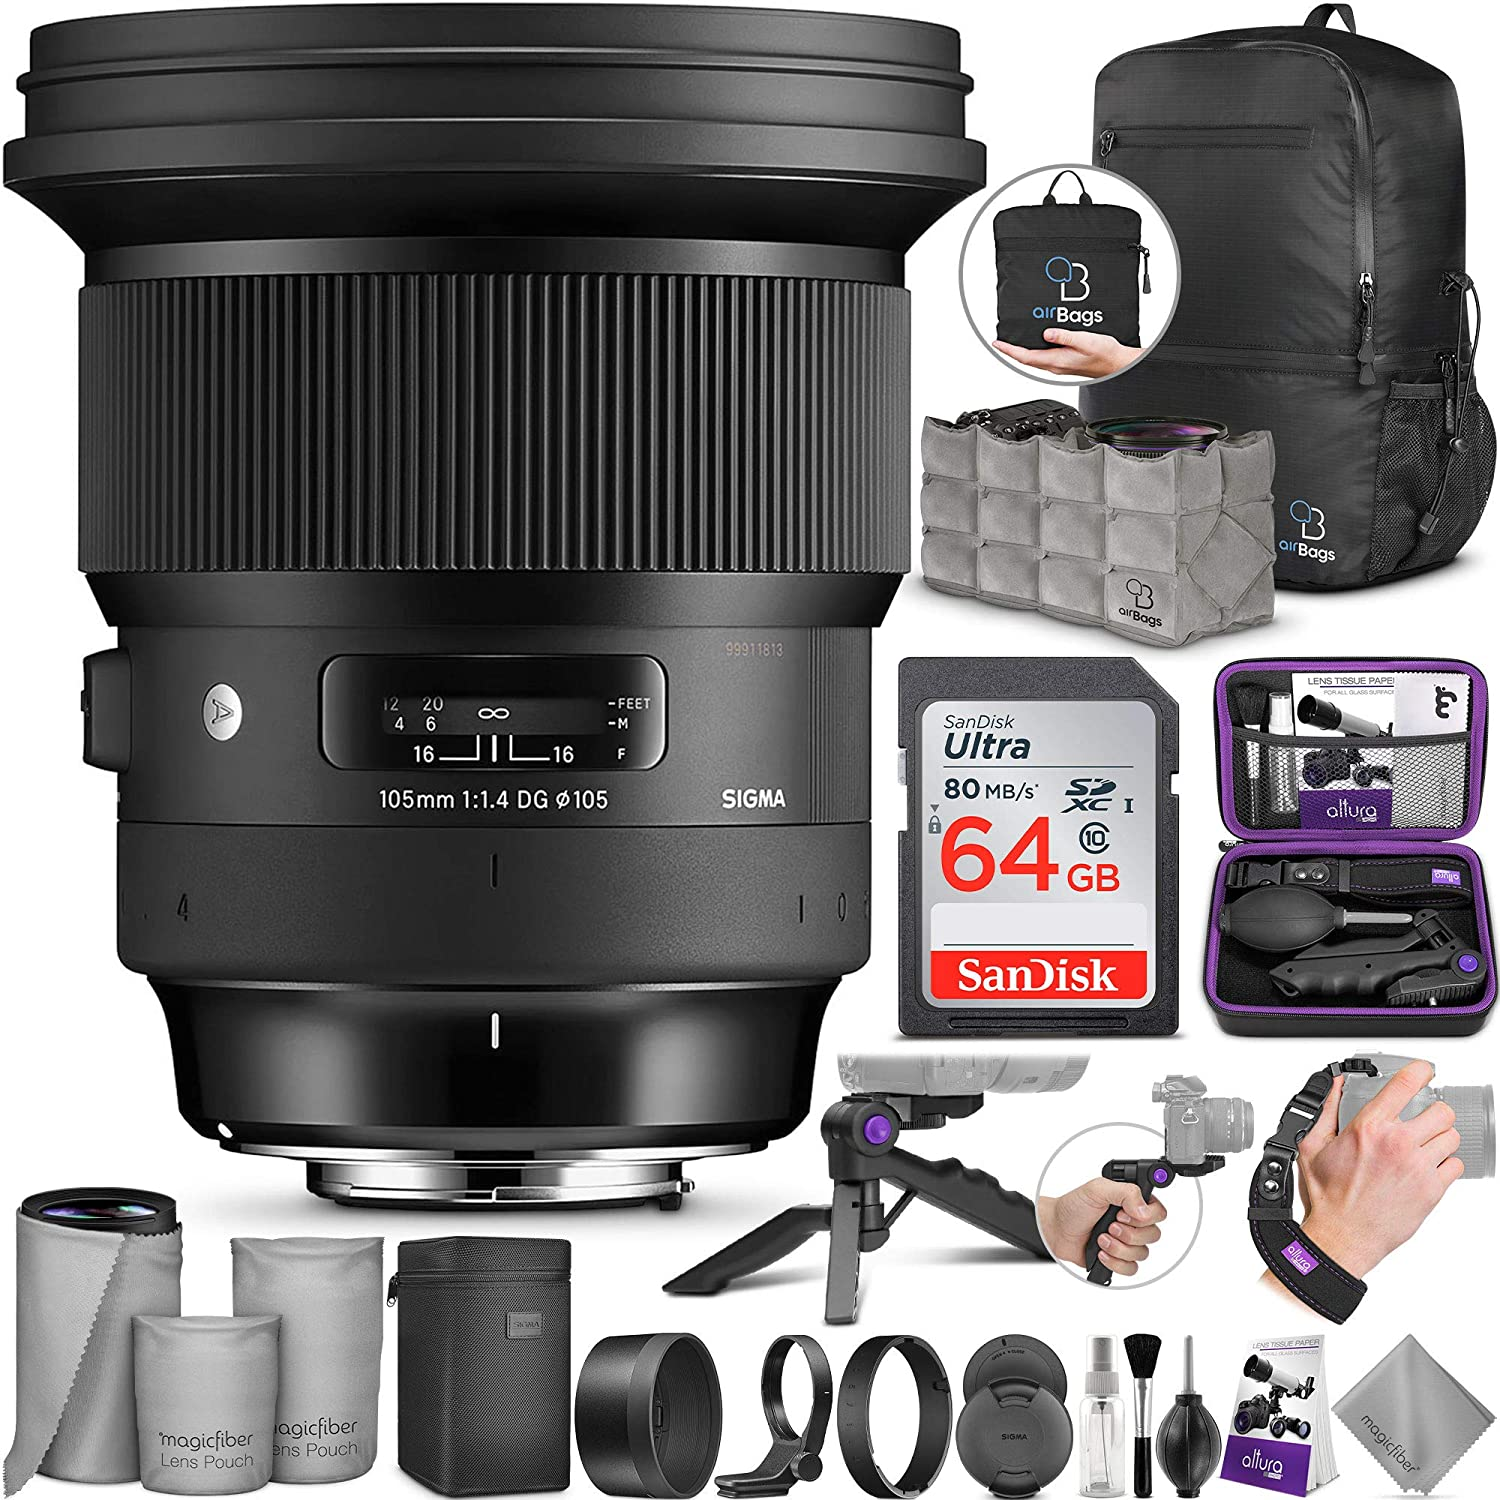 Sigma 105mm f/1.4 DG HSM Art Lens for Sony E with Altura Photo Advanced Accessory and Travel Bundle